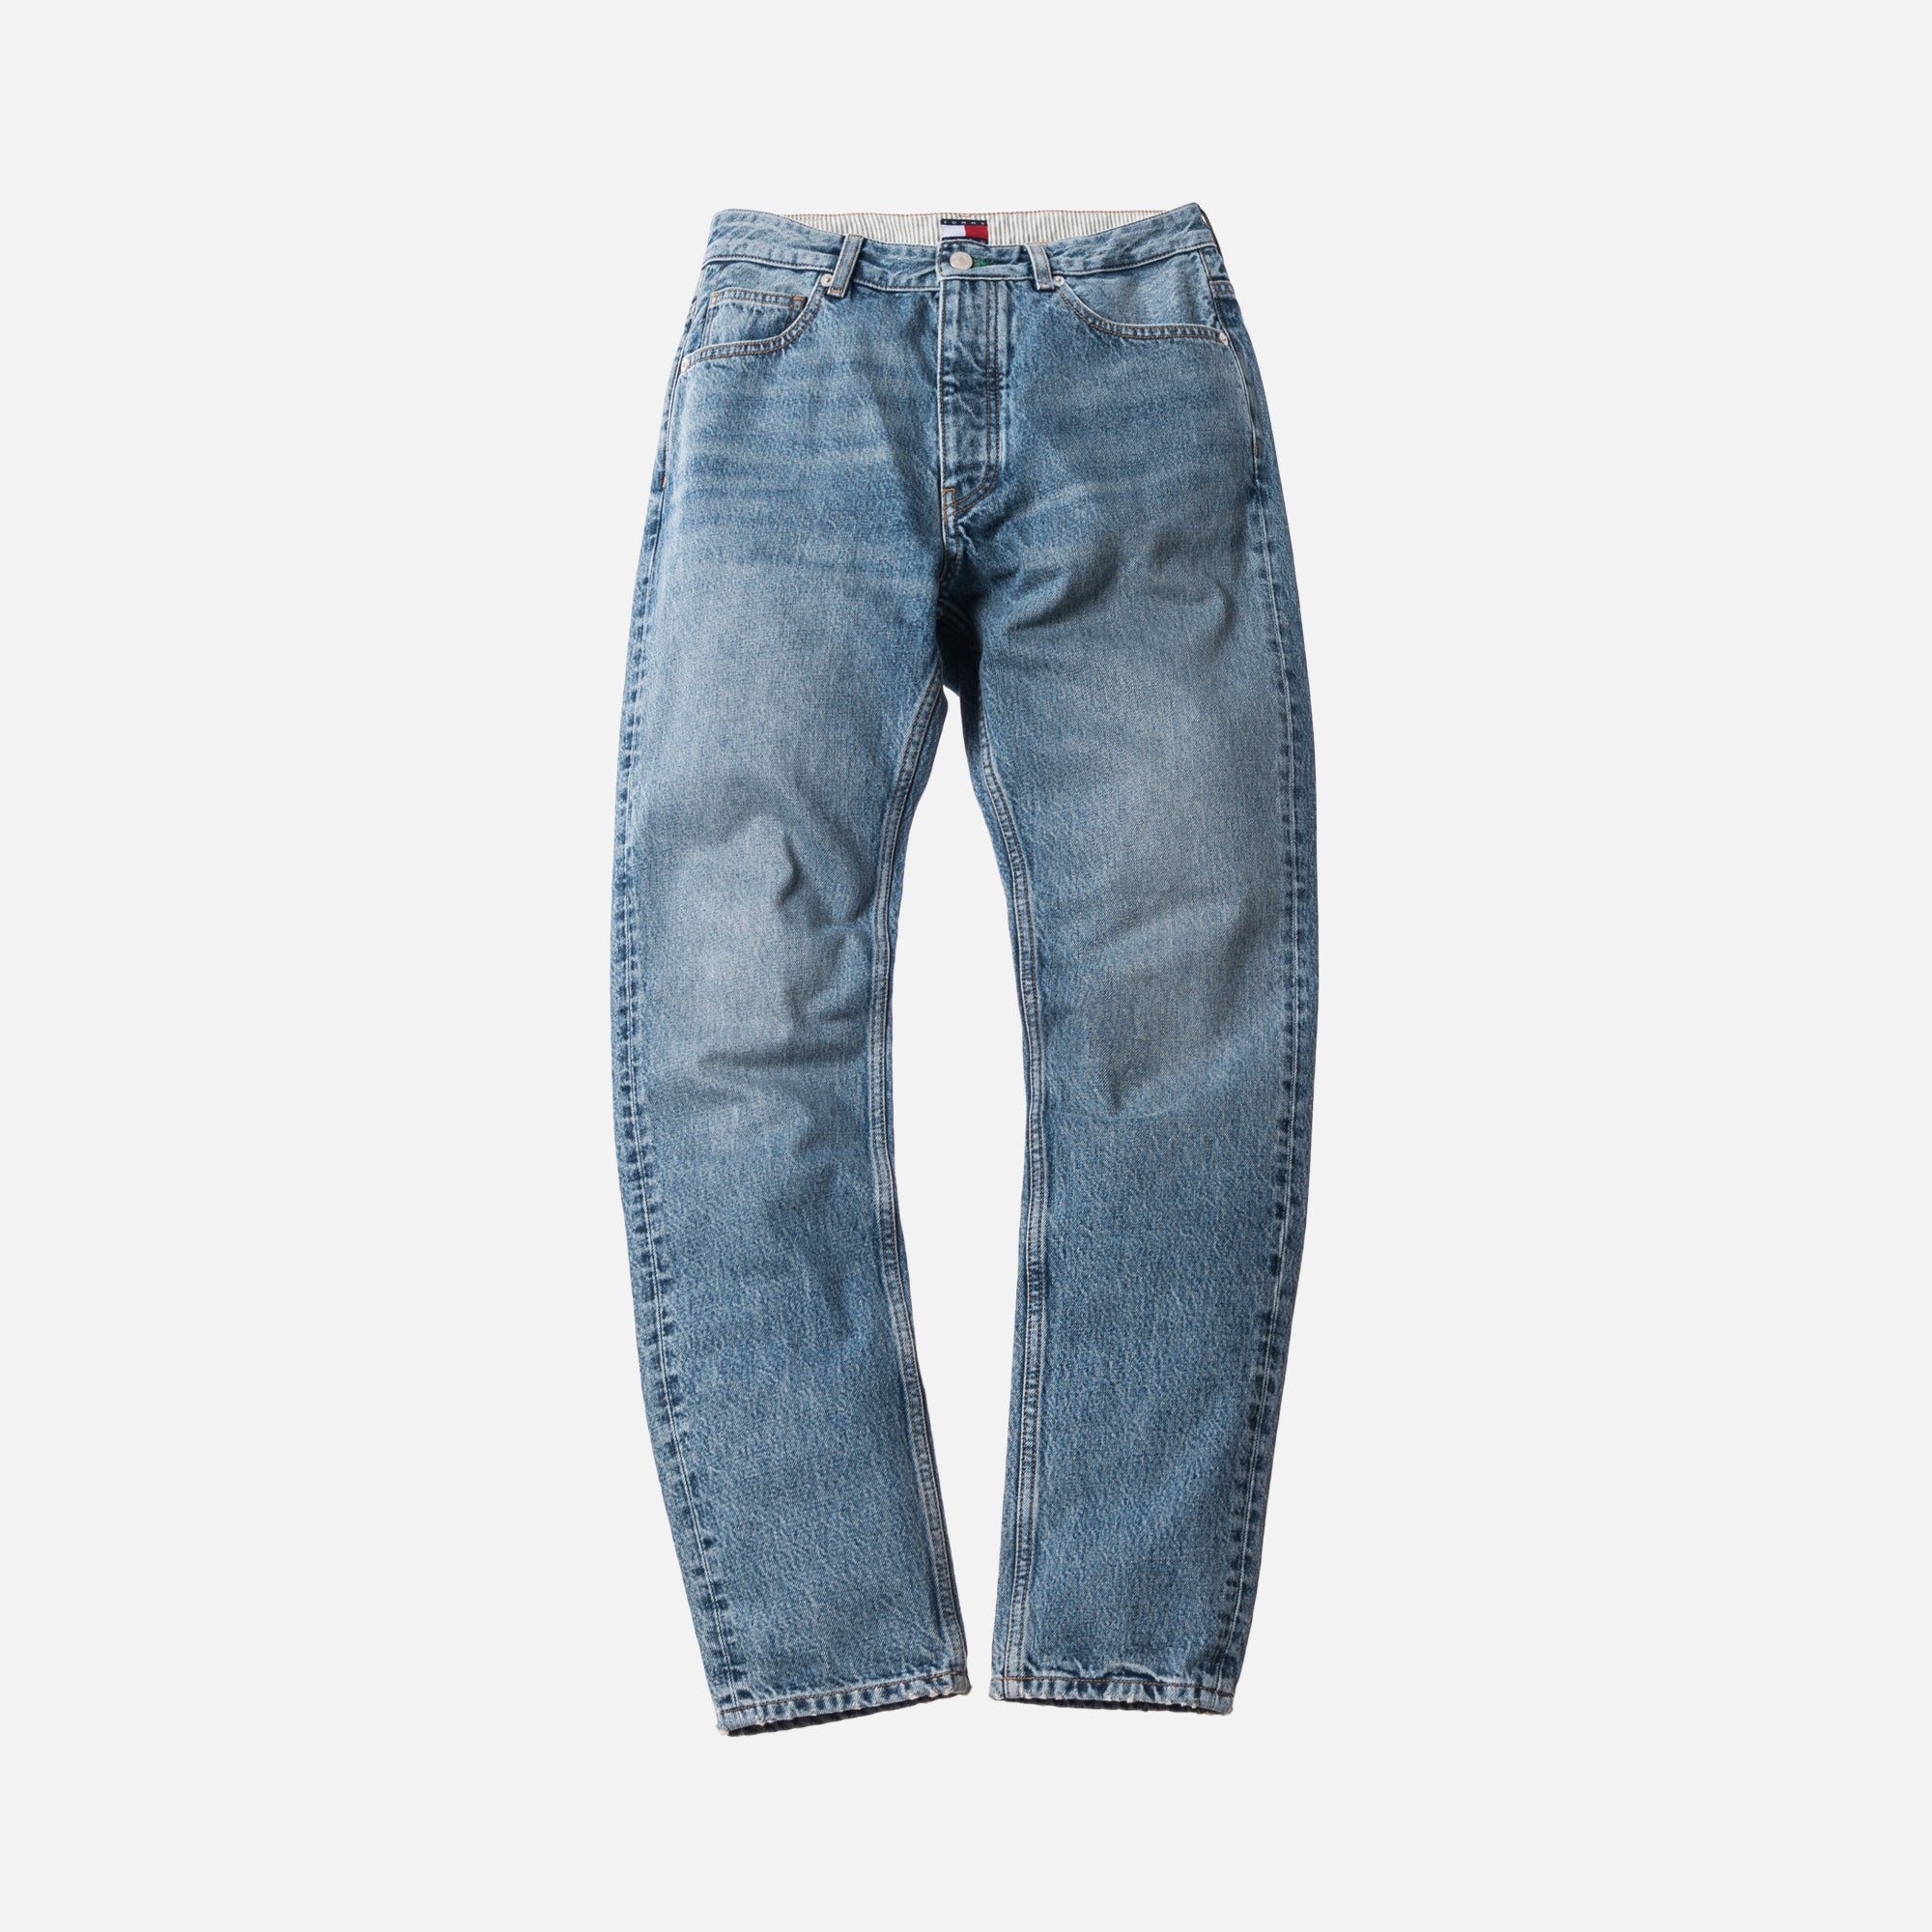 Kith X Tommy Hilfiger 5 Pocket Denim Pants Vintage Blue